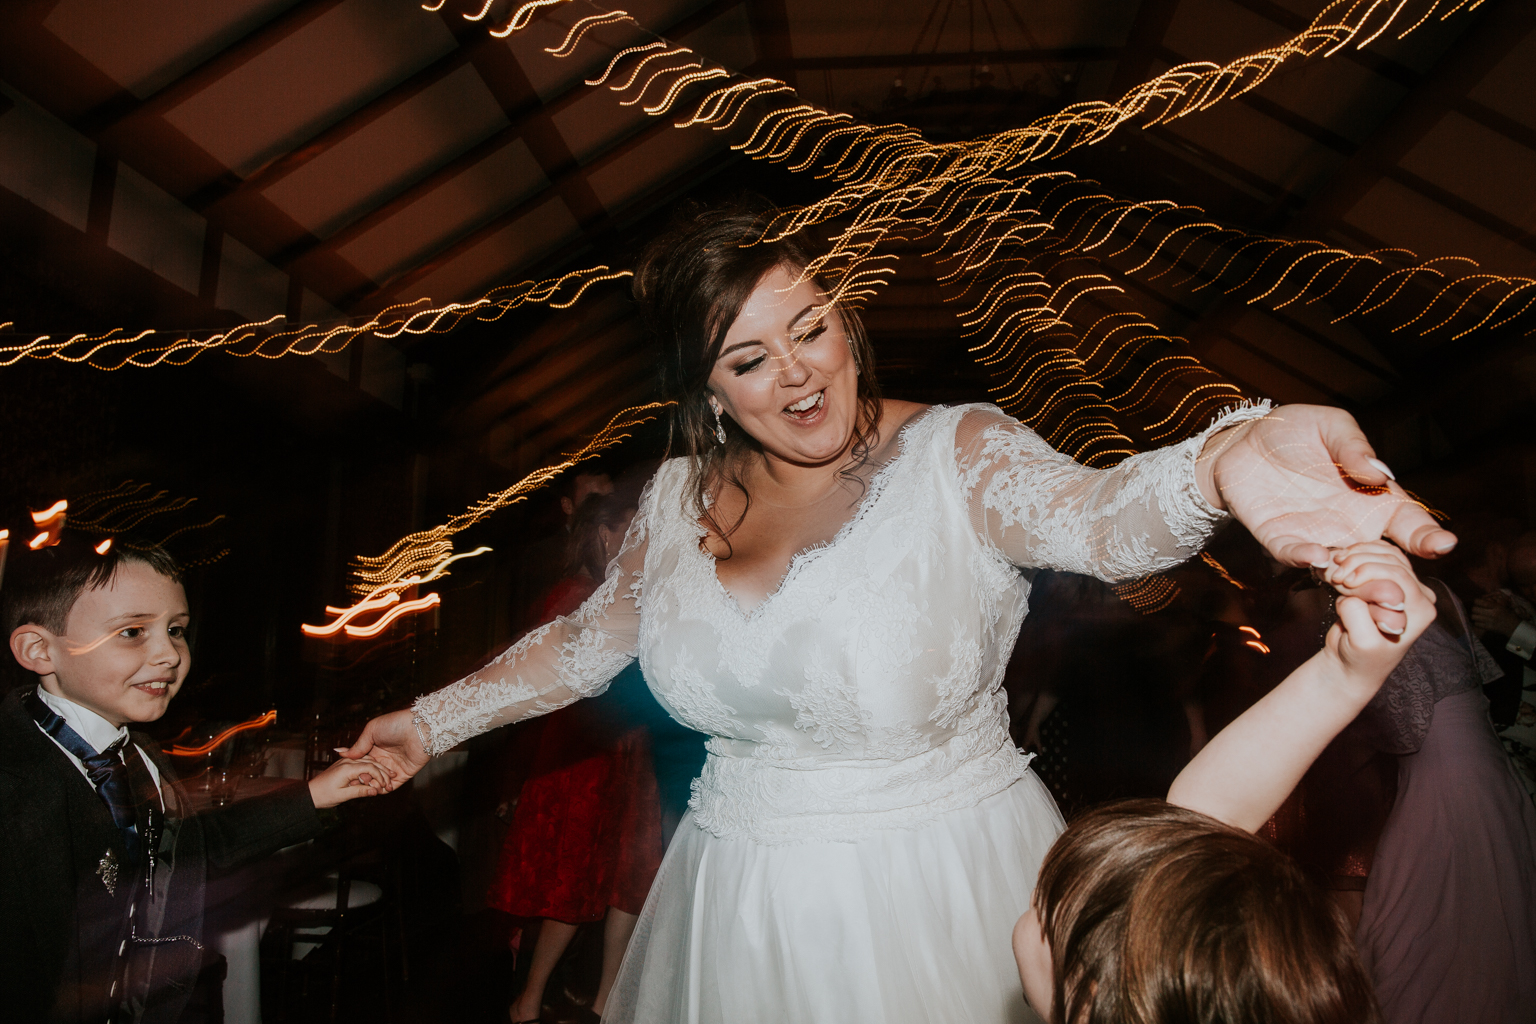 The bride on a dance floor